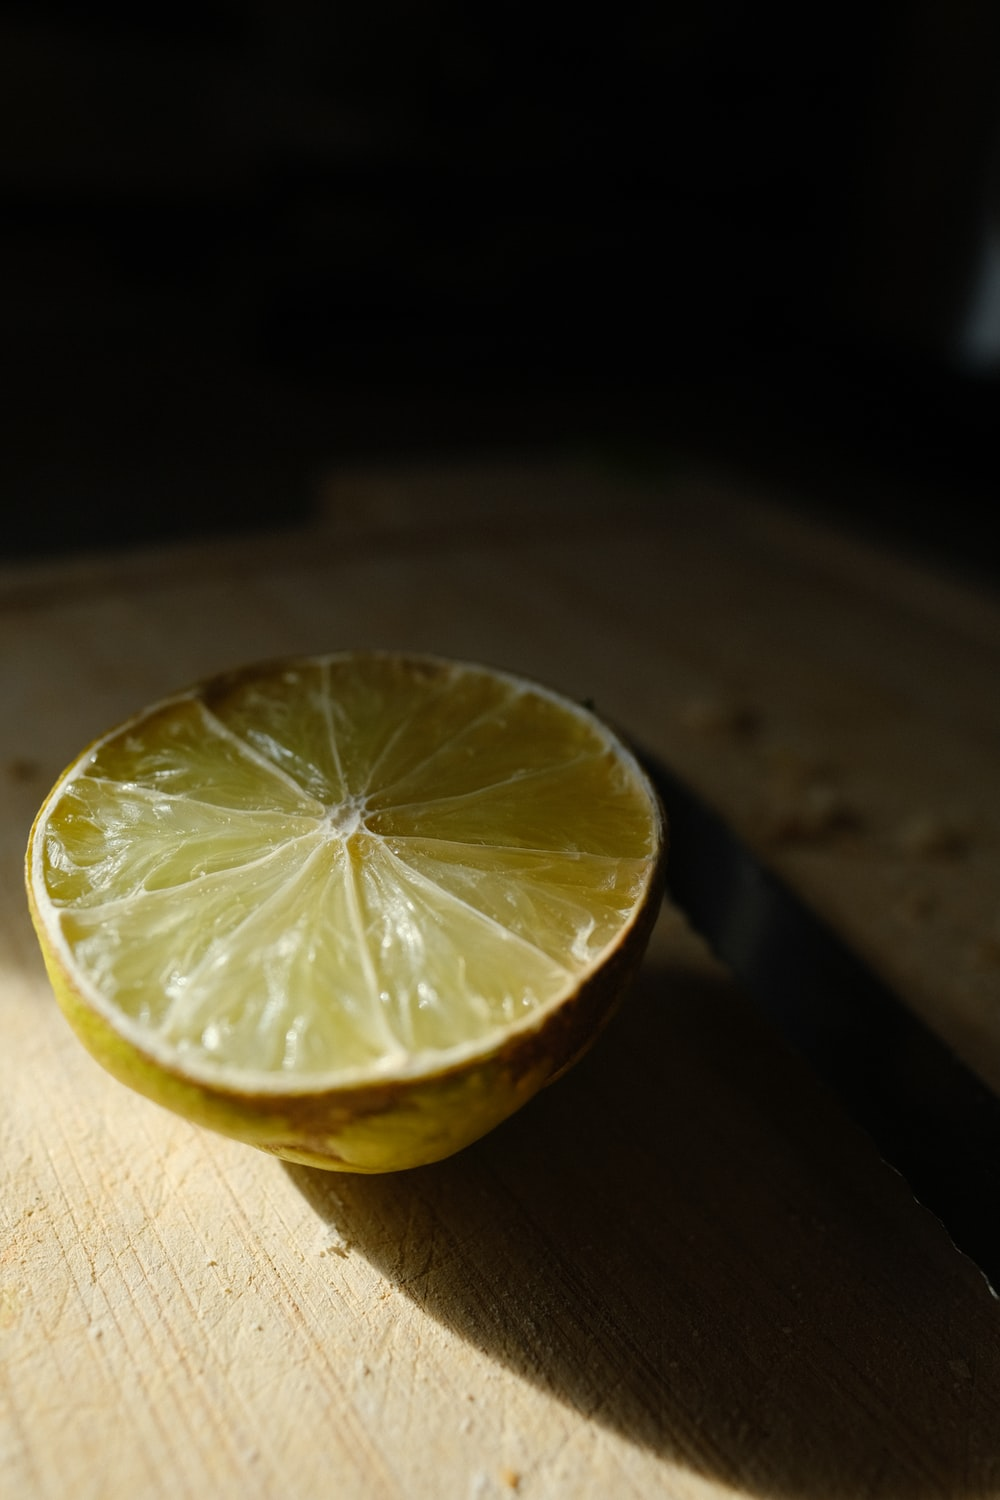 yellow lemon on brown wooden table